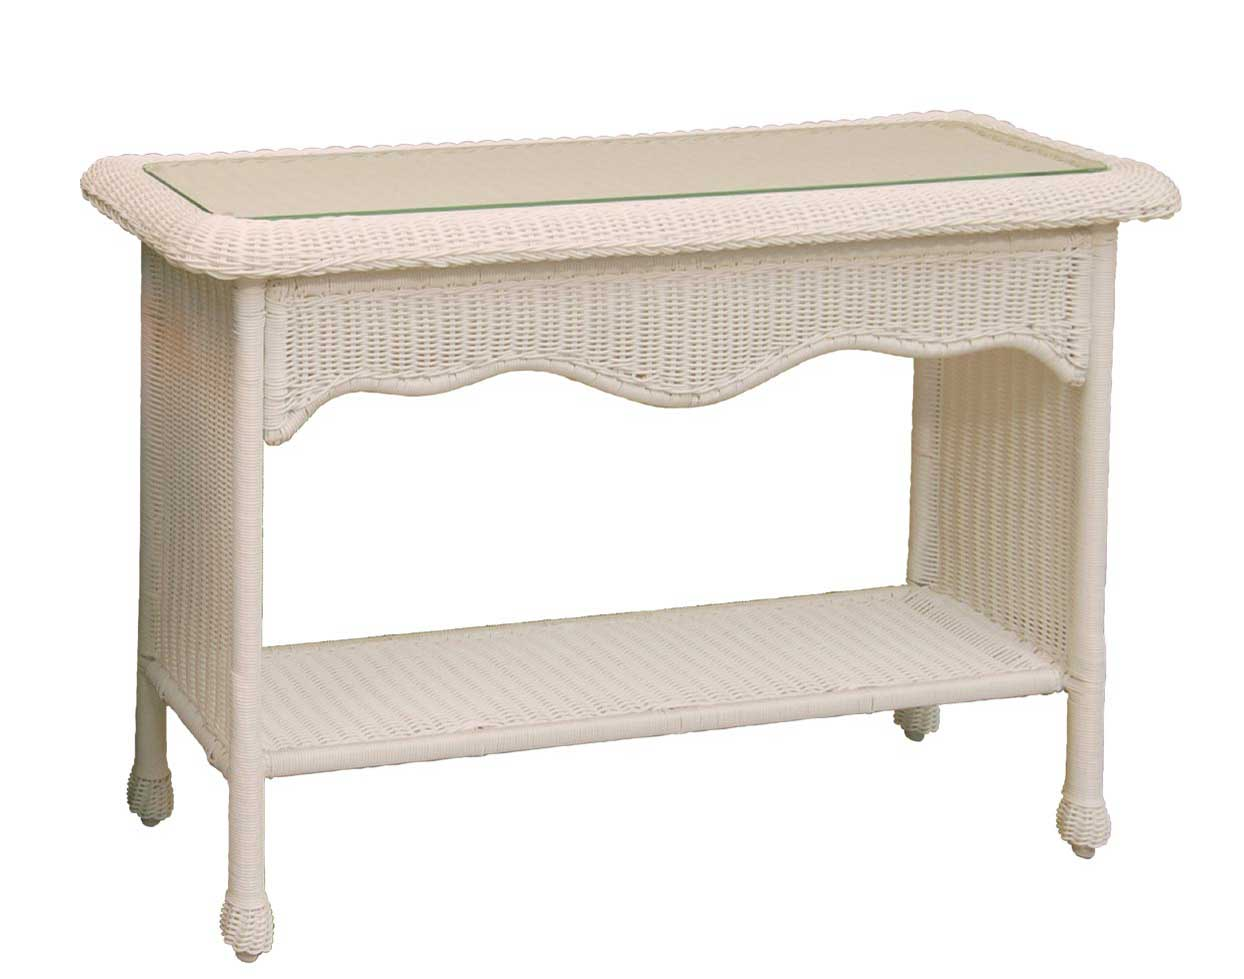 legare bamboo sofa table old karlstad cover wicker sands console